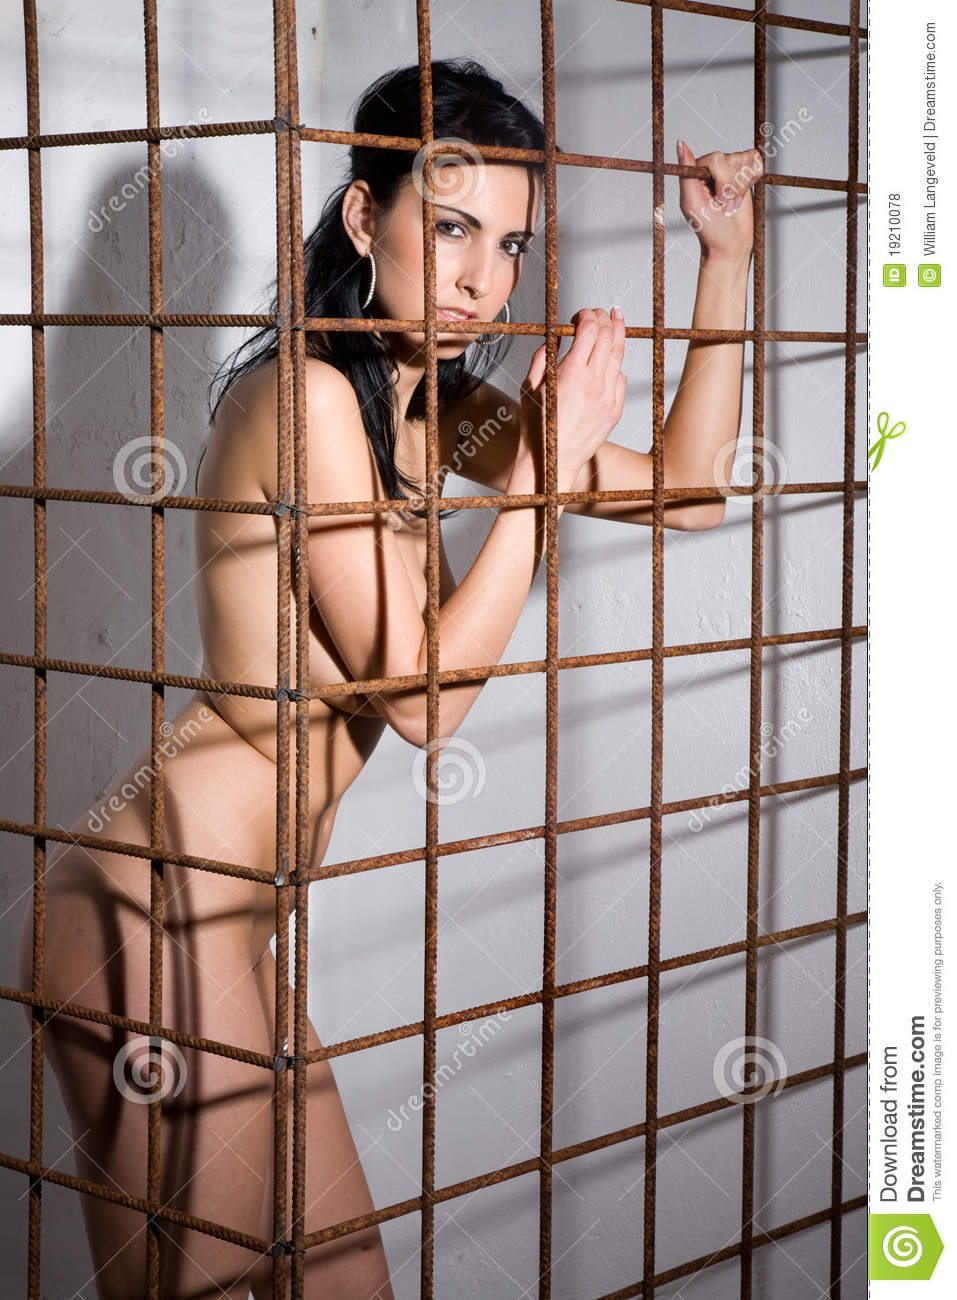 woman naked in cages